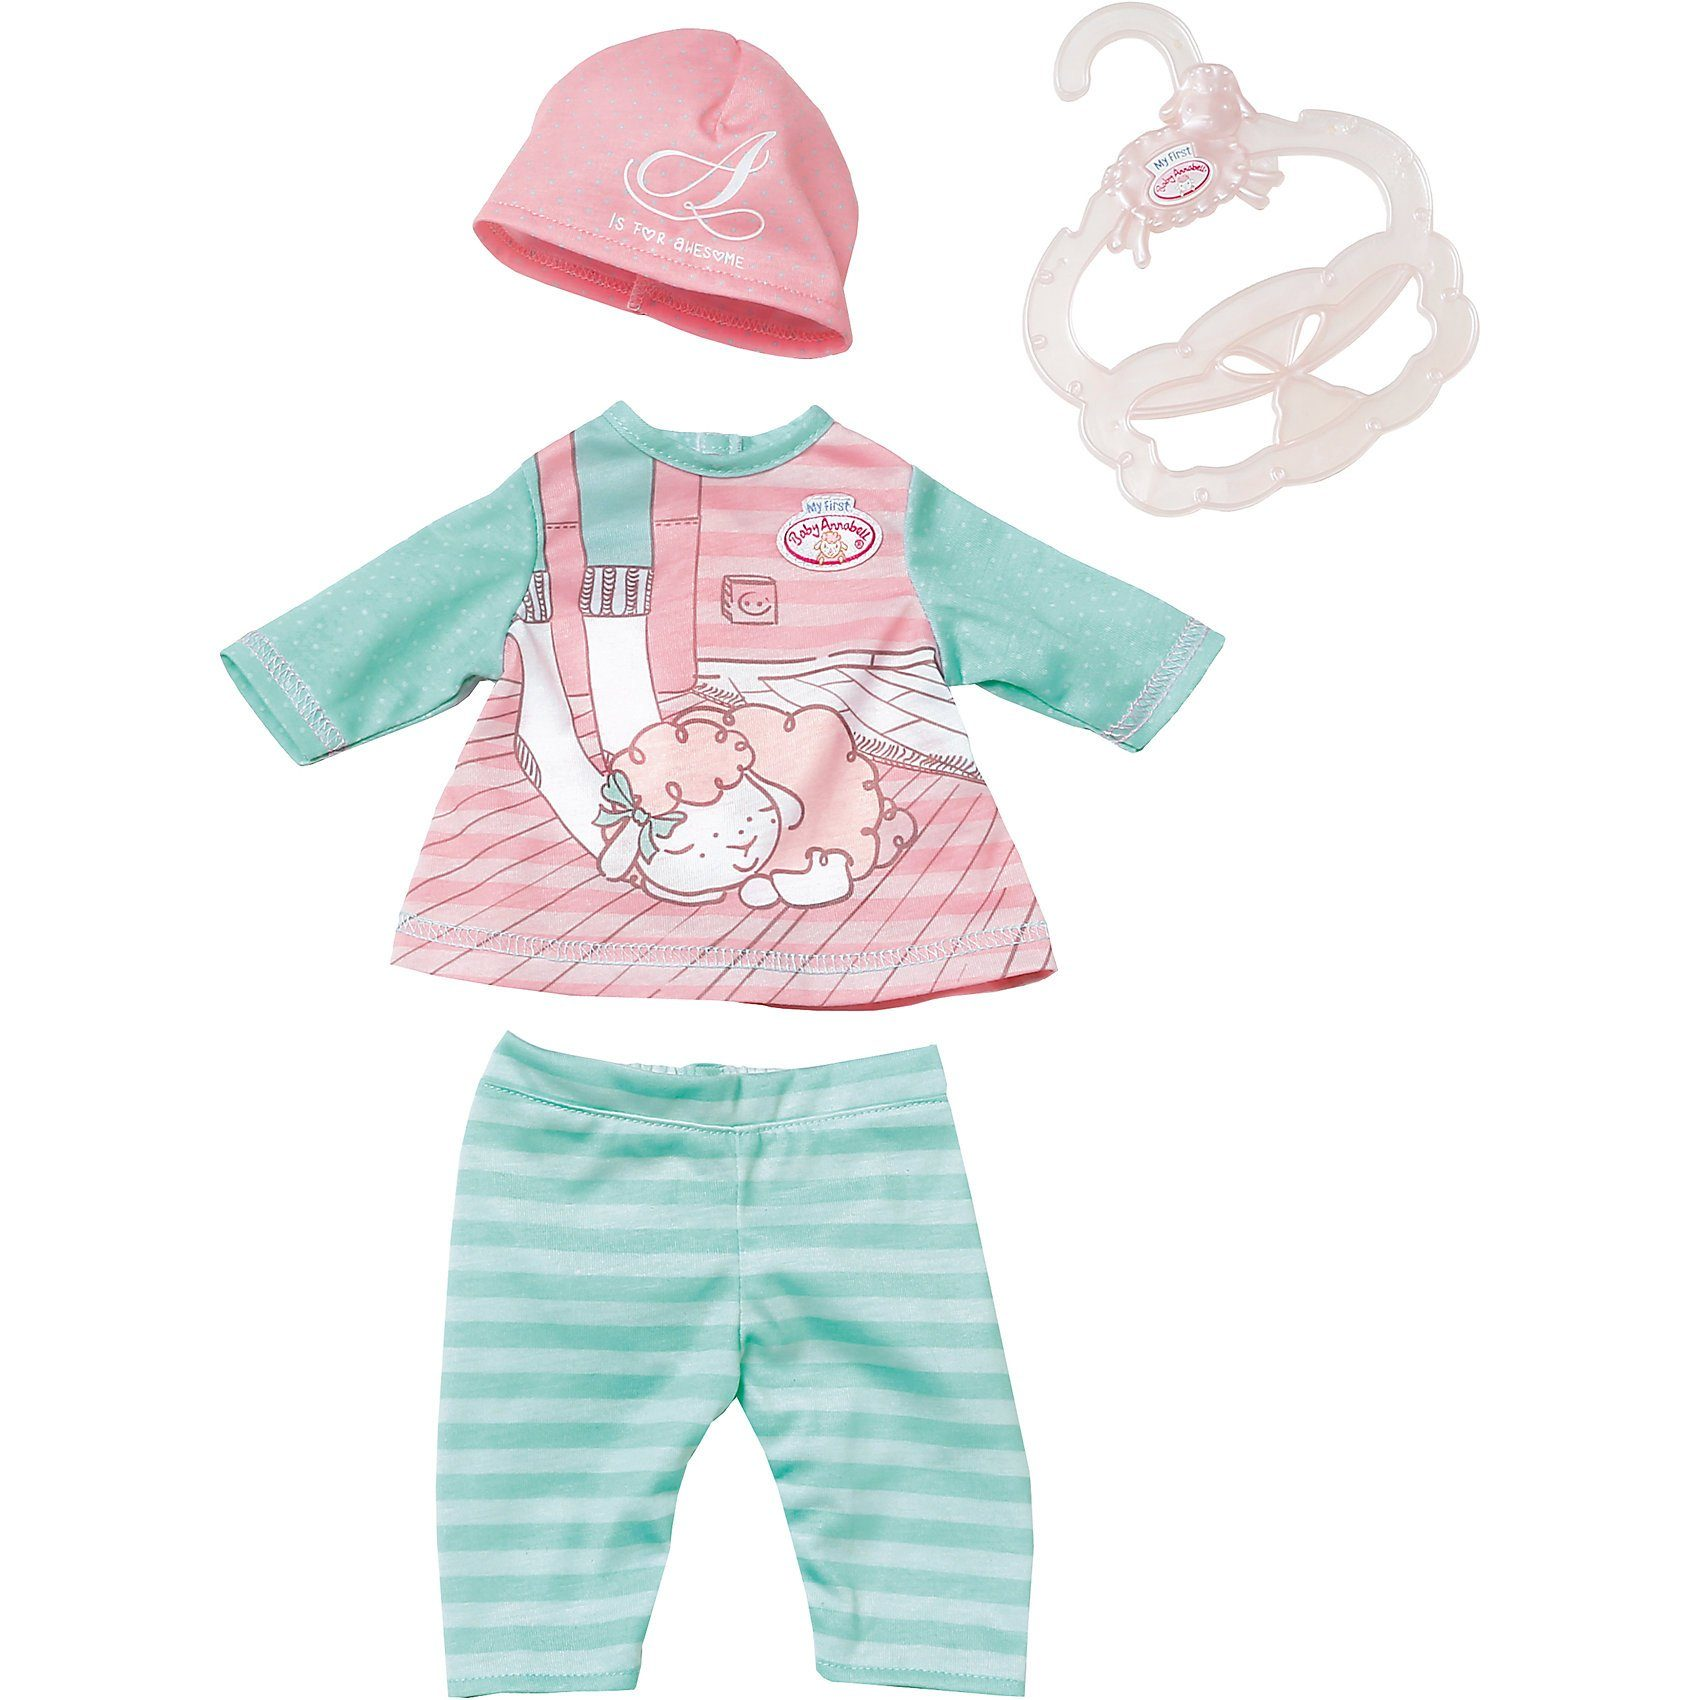 Zapf Creation My First Baby Annabell® Baby Outfit pink hat